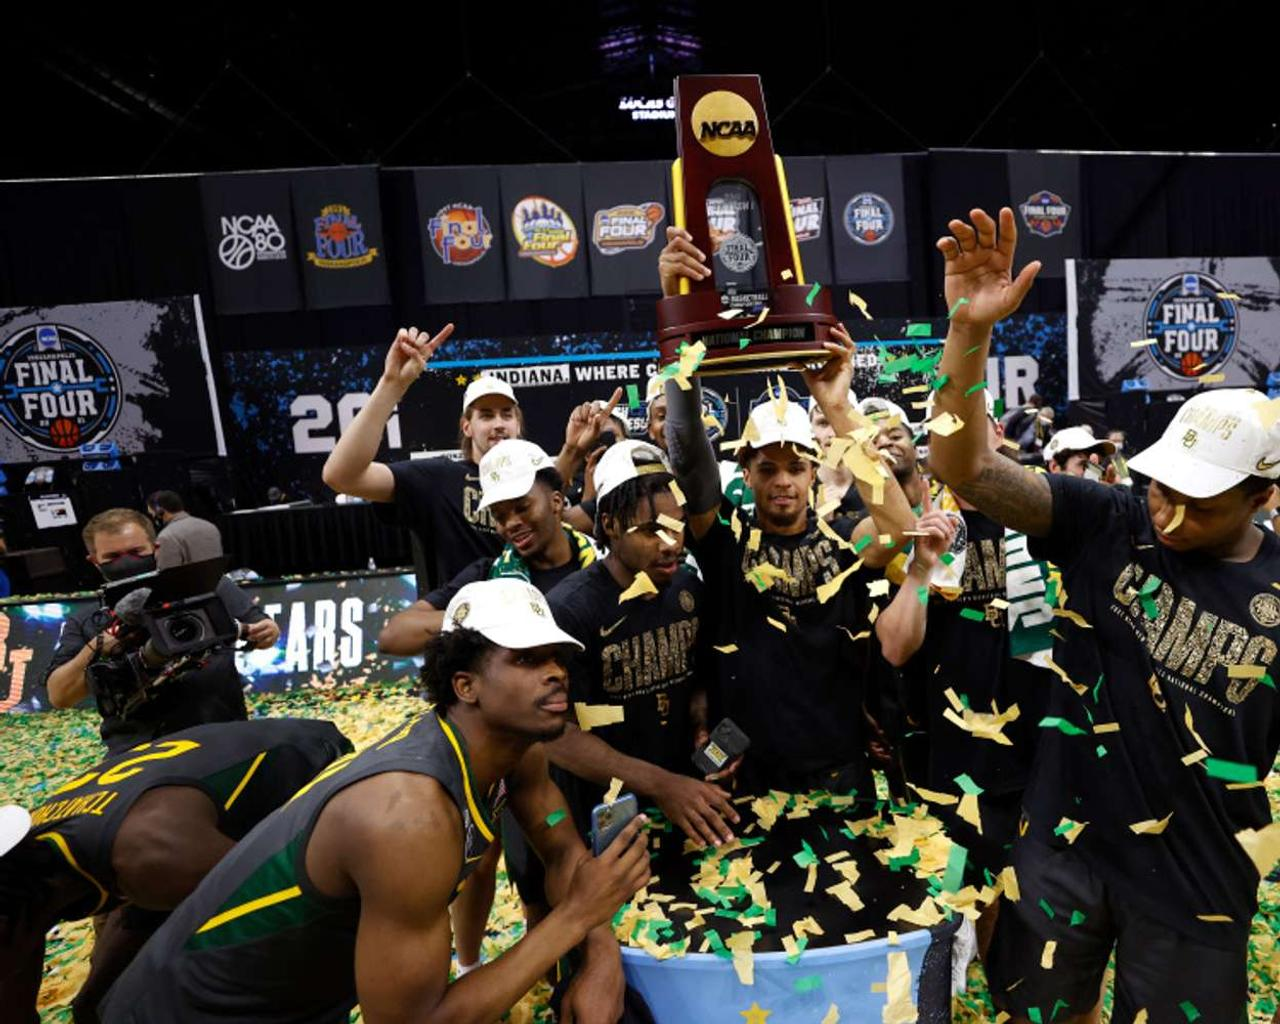 Baylor takes the NCAA men's tournament title by defeating Gonzaga